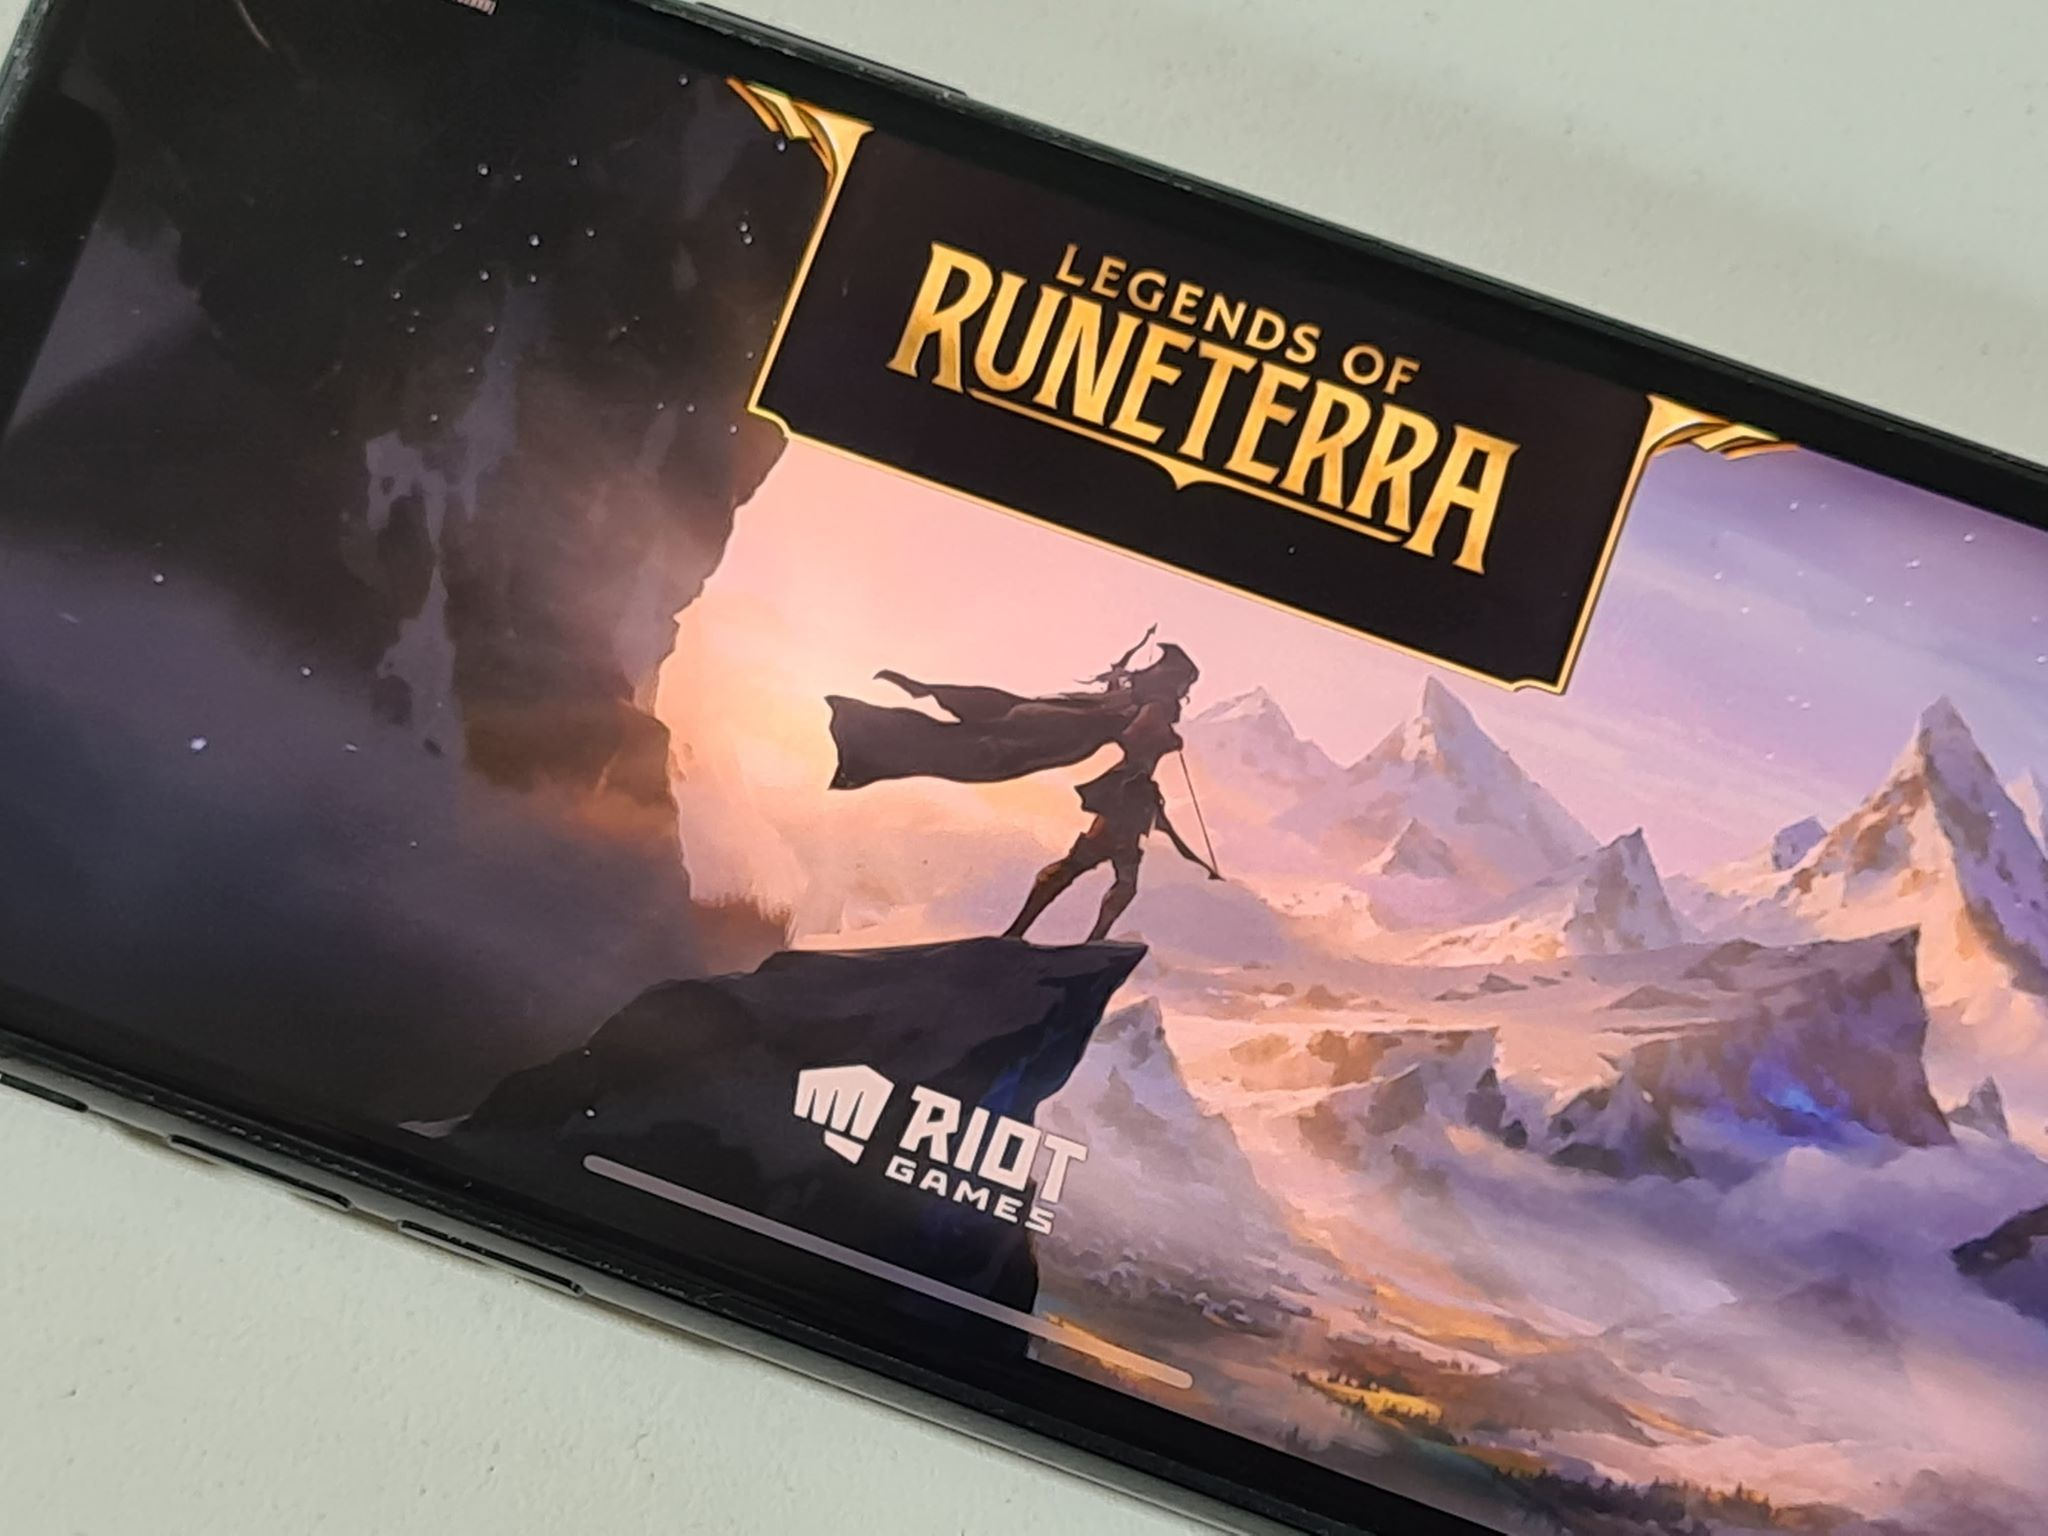 Dans l'univers de League of Legends, Legends of Runeterra débarque sur Android et iPhone